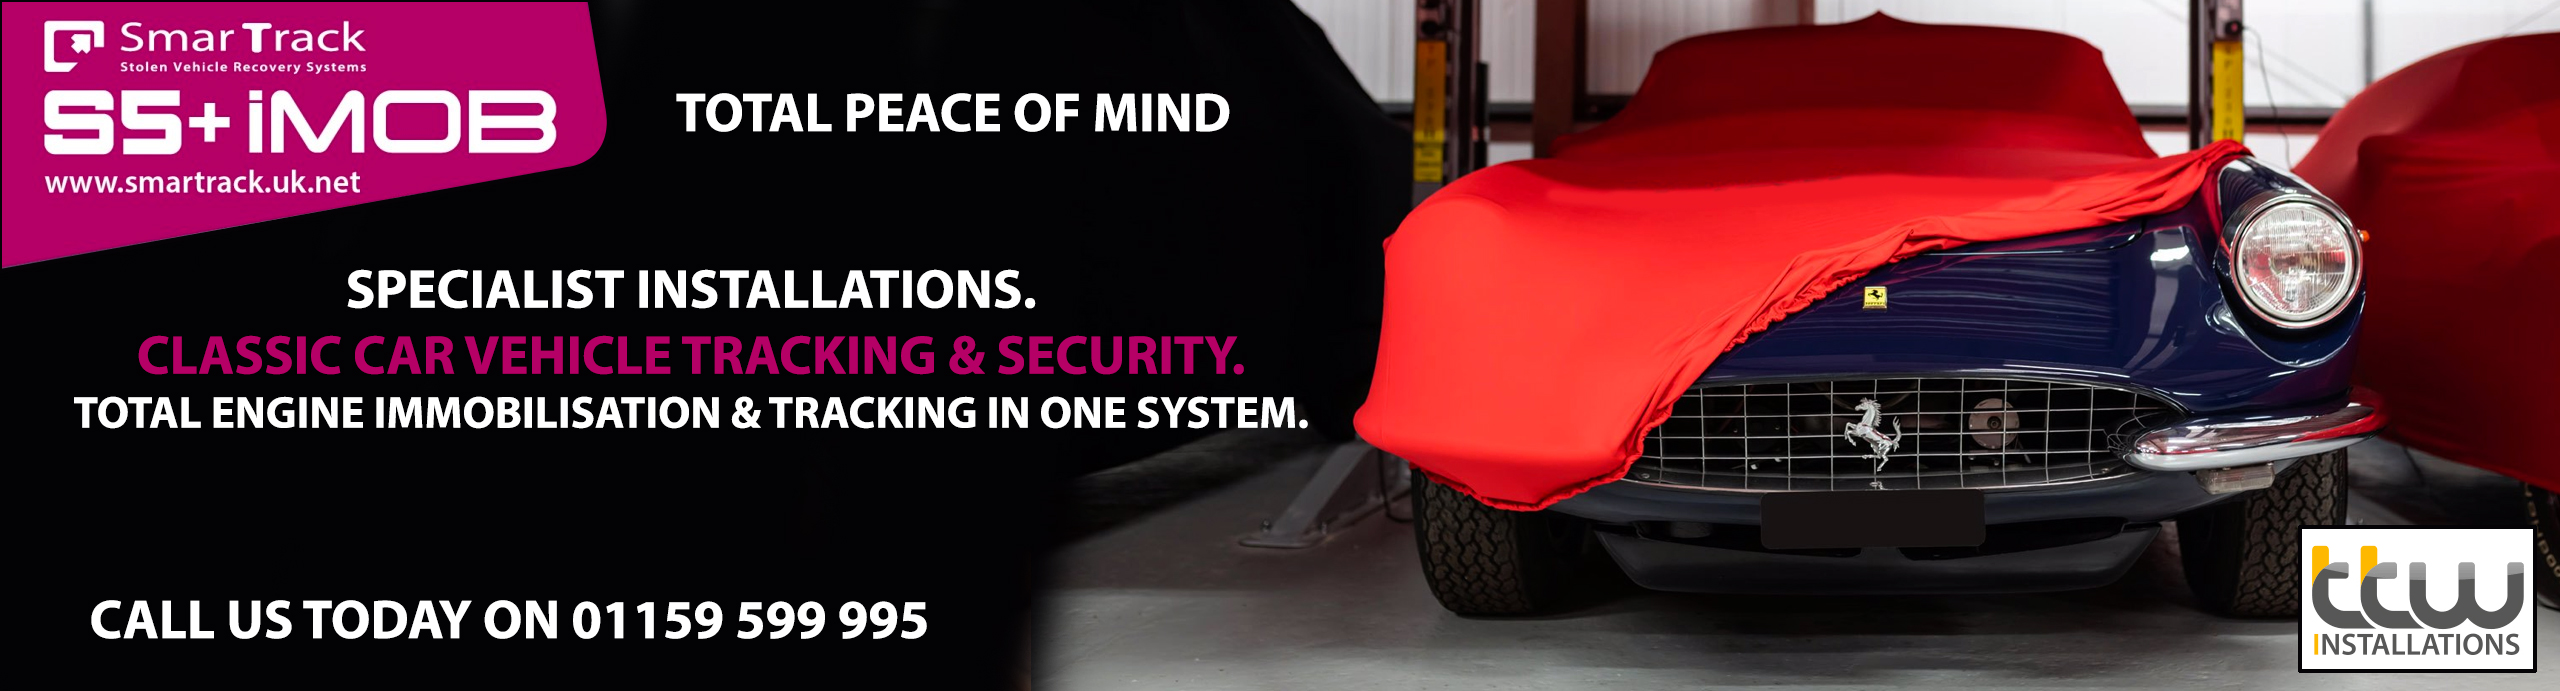 The Ultimate Classic car Security - Vehicle Tracking 24H & Full Vehicle Immobilisation